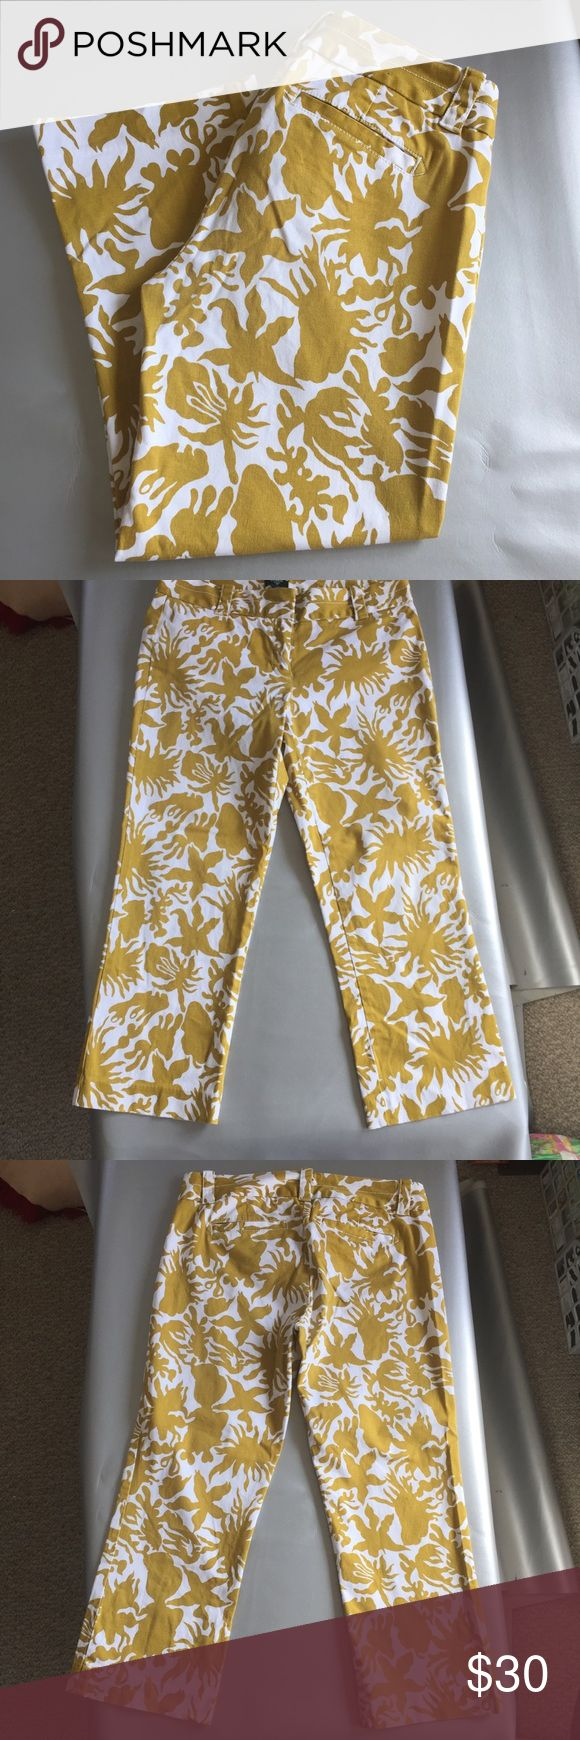 """J. Crew factory city fit gold floral cropped pants J. Crew factory stretch city fit cropped pants. In gold and white with an abstract floral pattern. Waist is 32"""" inseam is 23"""" rise is 11""""(high rise) Length is 33"""". Has two small back slide pockets .In excellent condition. No odors. Smoke free and pet friendly. Thanks for looking! Sorry cannot model. J. Crew Factory Pants Ankle & Cropped"""